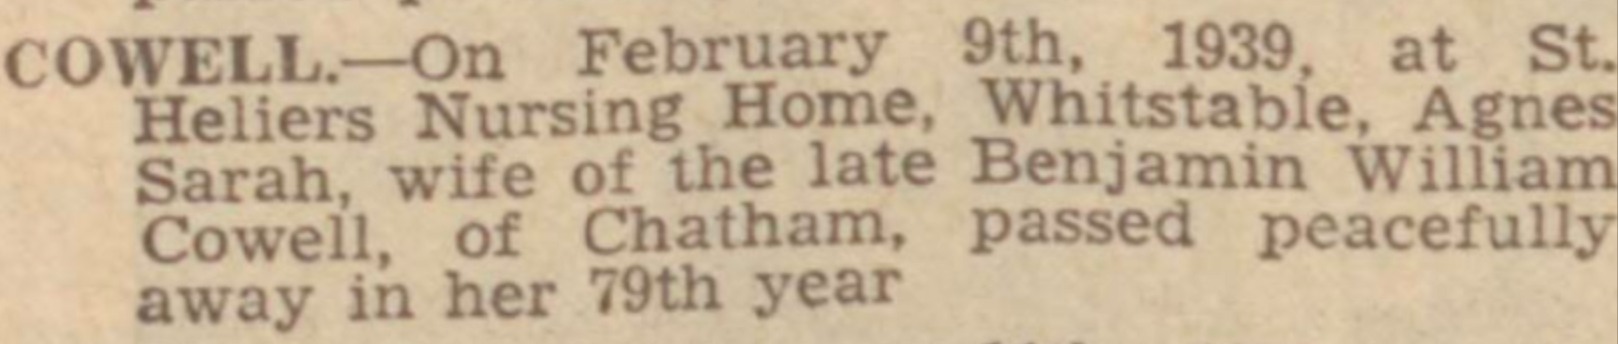 Chatham News 17 Feb 1939